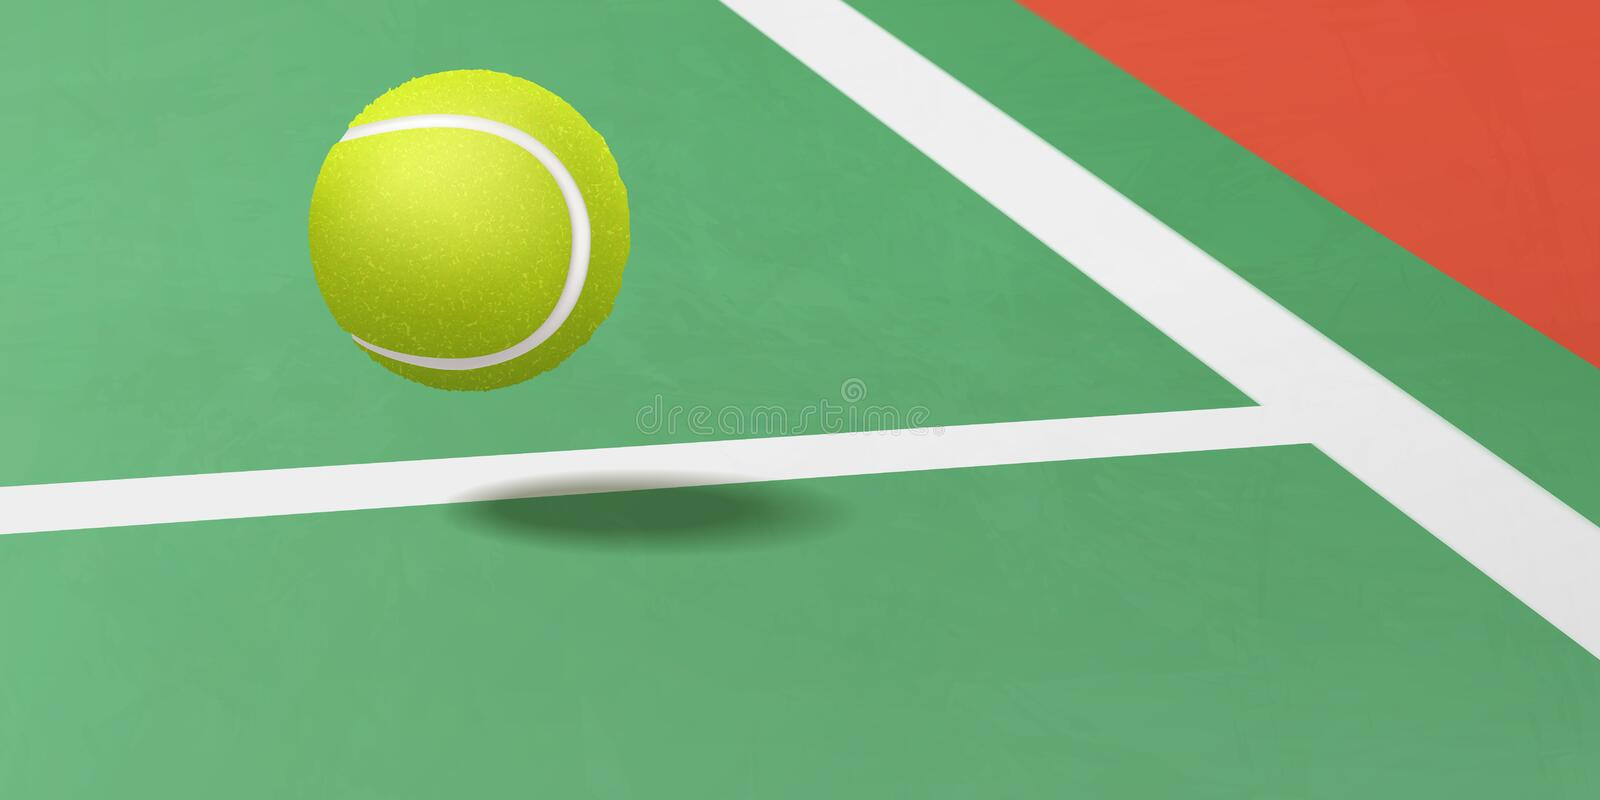 Tennis ball flying under court realistic vector. Tennis tournament, racket sport game competition or championship ad background template with new tennis ball stock illustration